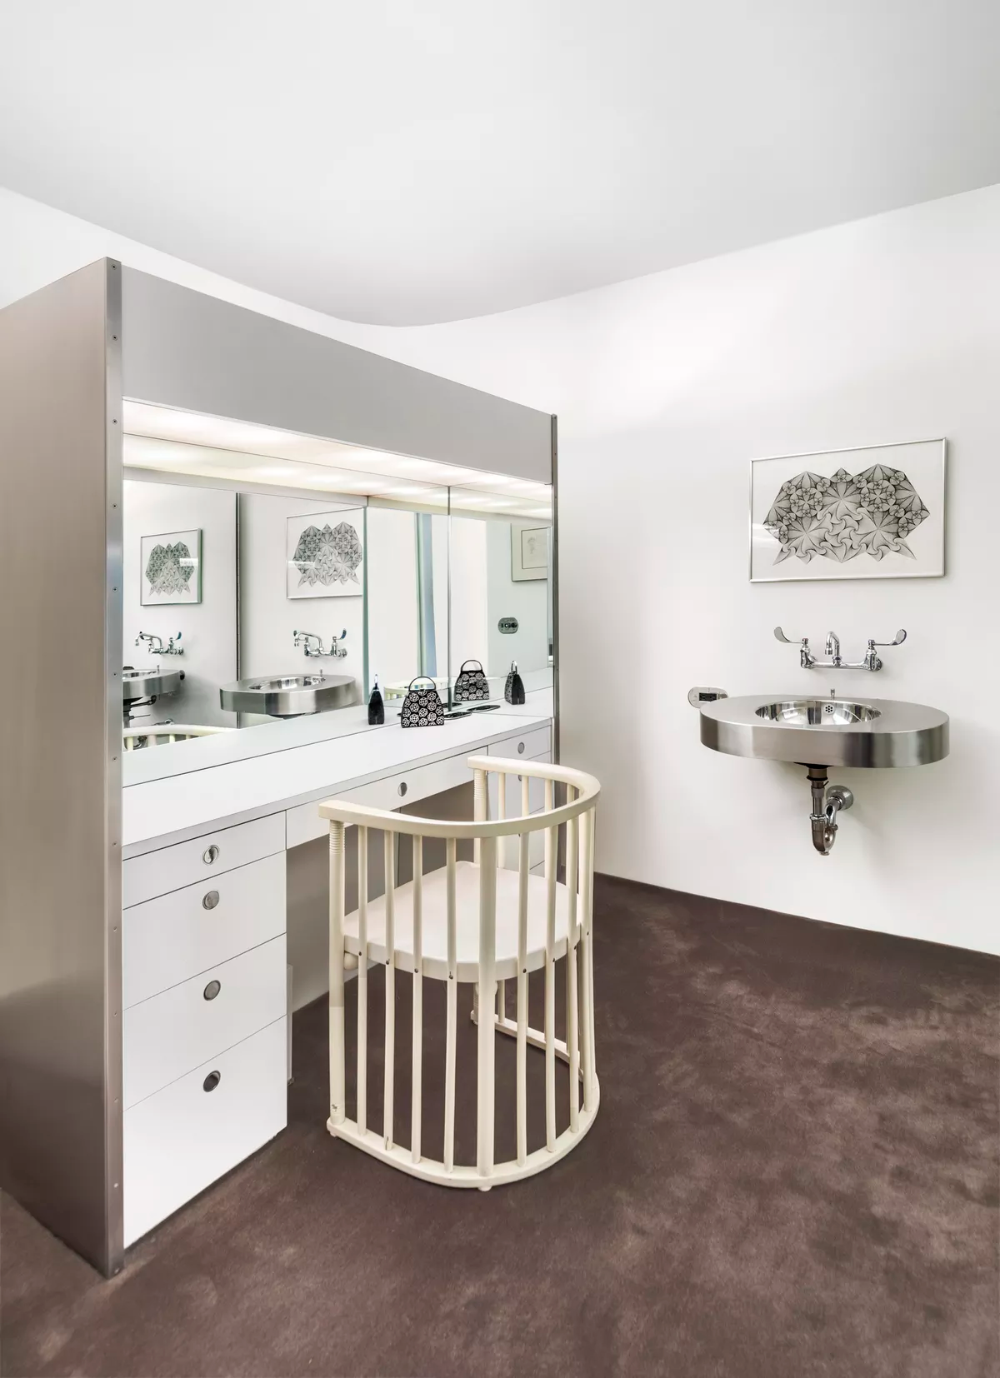 Modernist Fifth Avenue time capsule designed by Ward